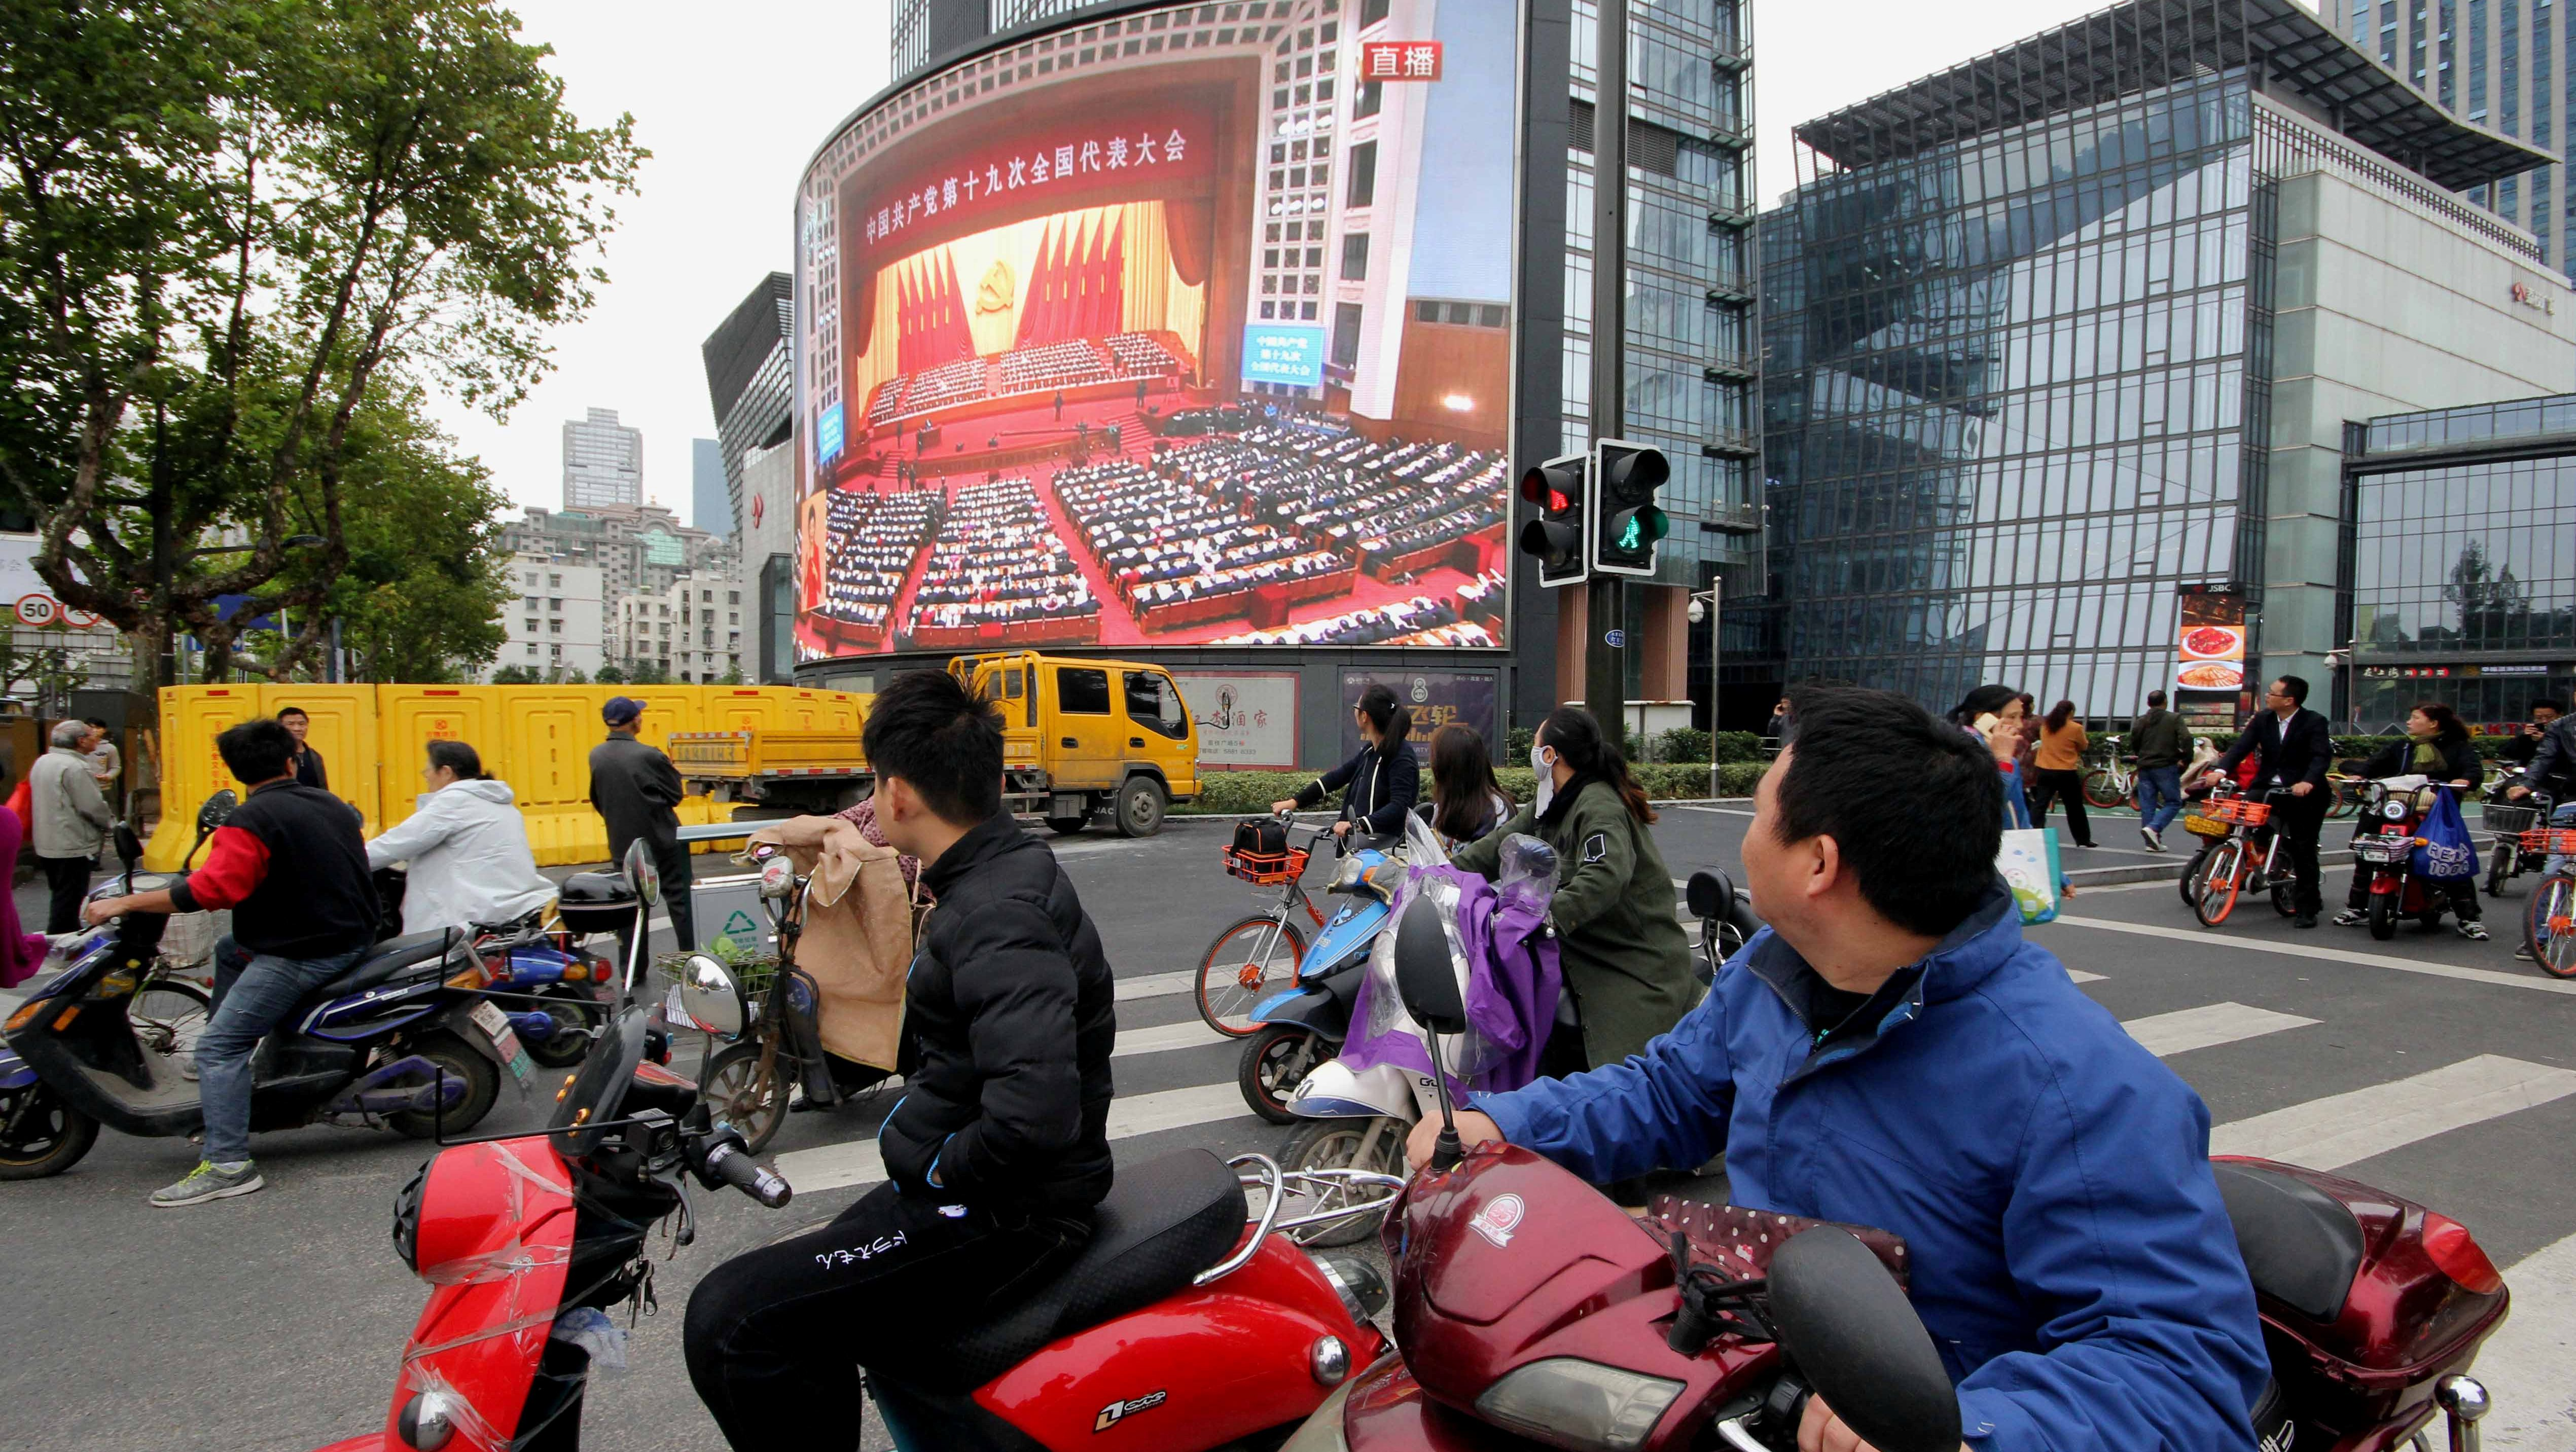 People watch a broadcast of Chinese President Xi Jinping delivering his speech during the opening of the 19th National Congress of the Communist Party of China, on a giant outdoor screen in Nanjing, Jiangsu province, China October 18, 2017. REUTERS/Stringer